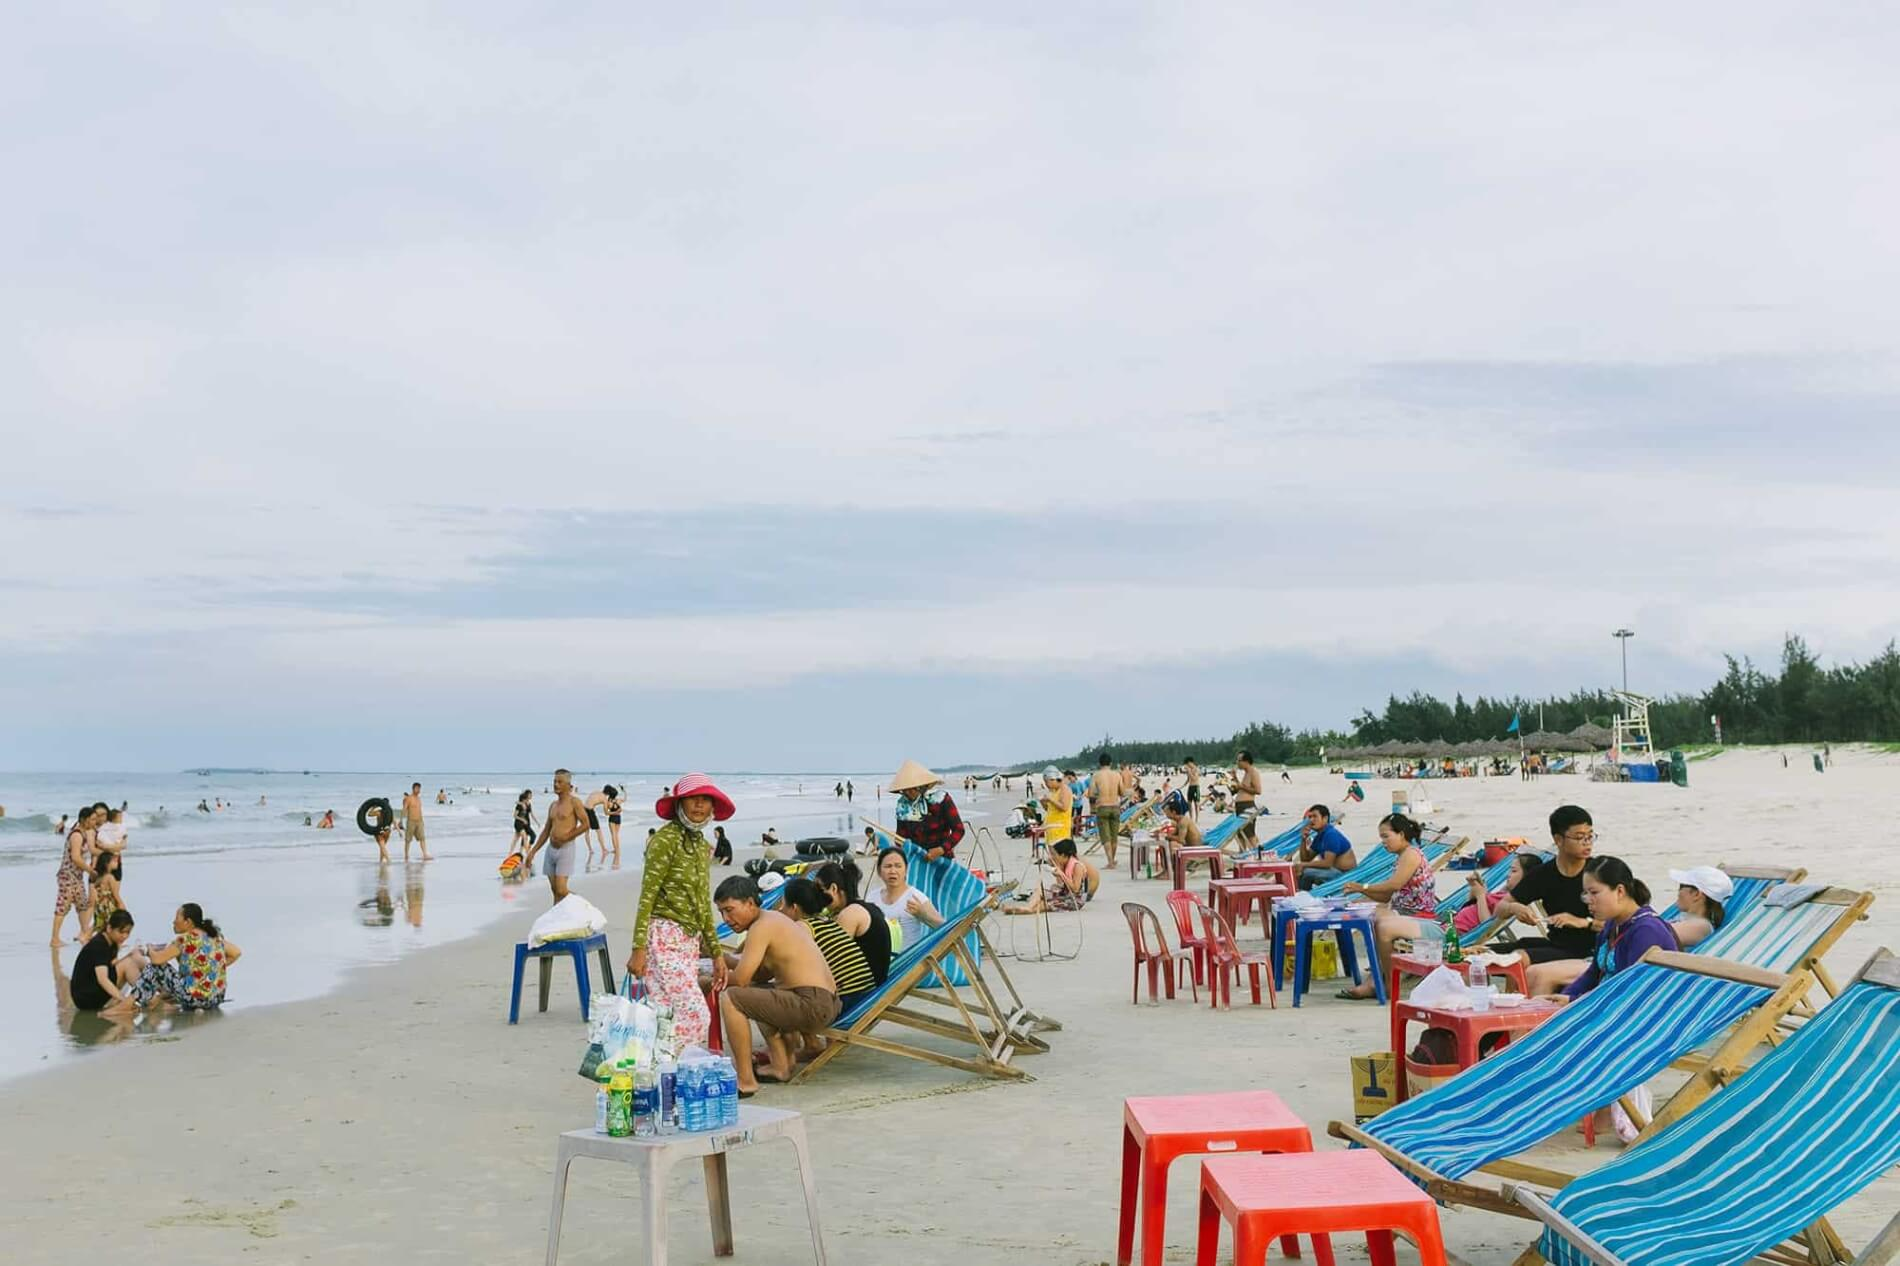 Crowd at Tam Thanh beach